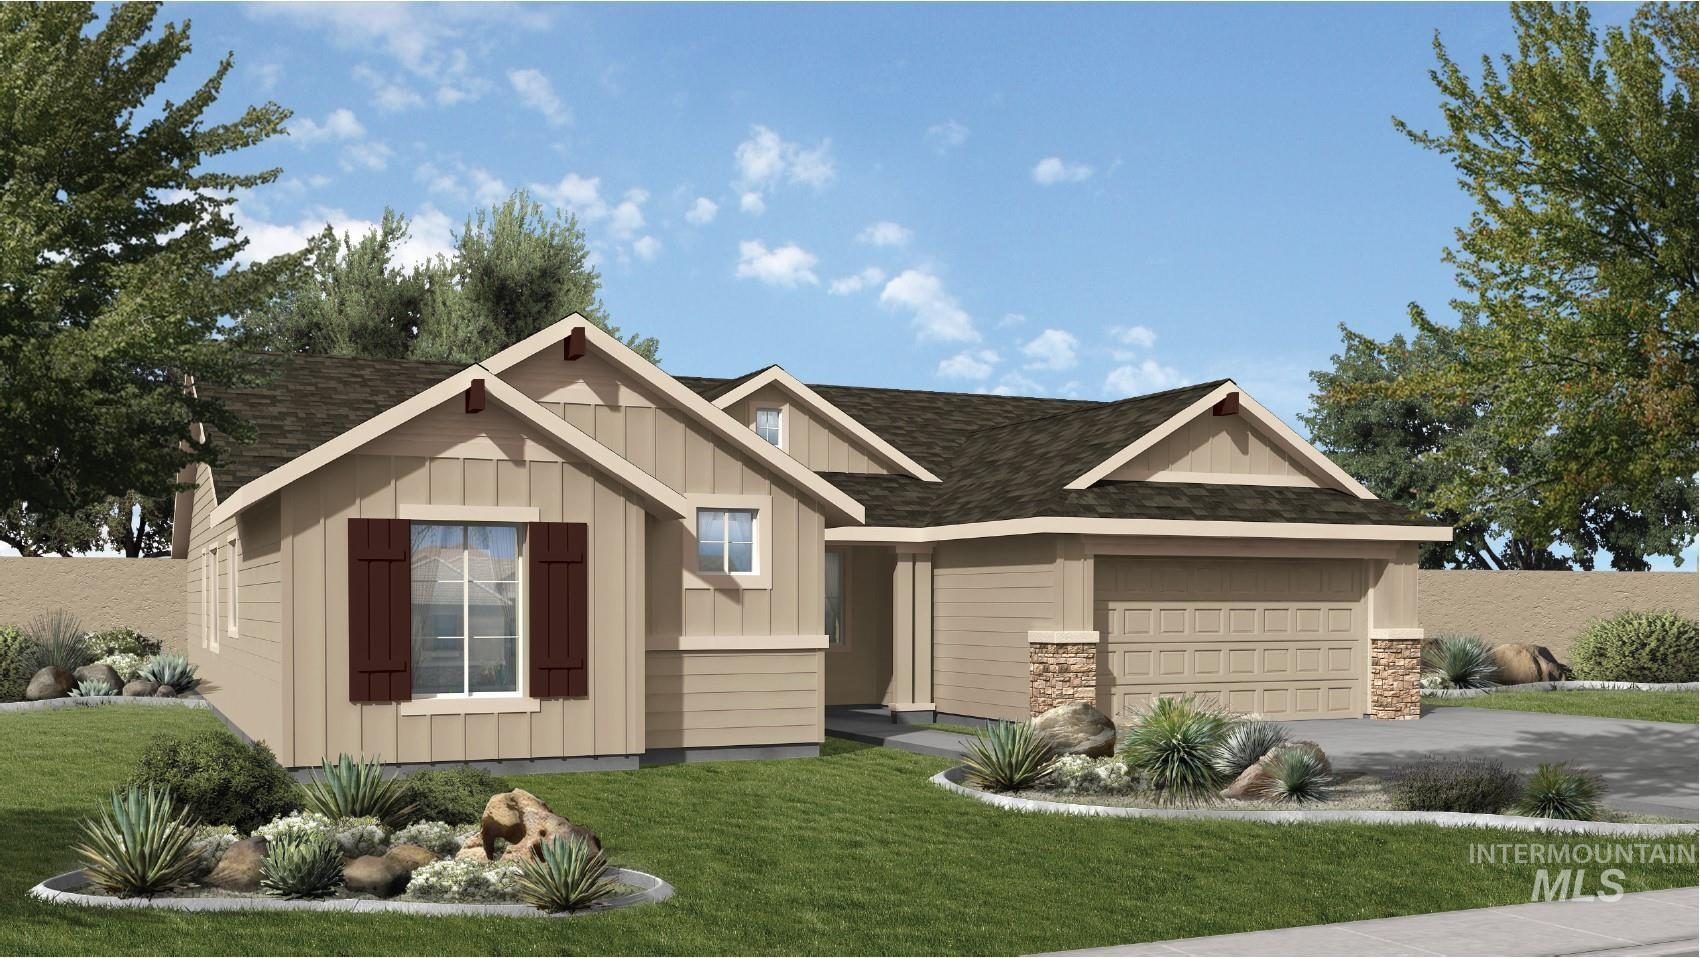 12794 S Arezzo Way Property Photo - Nampa, ID real estate listing